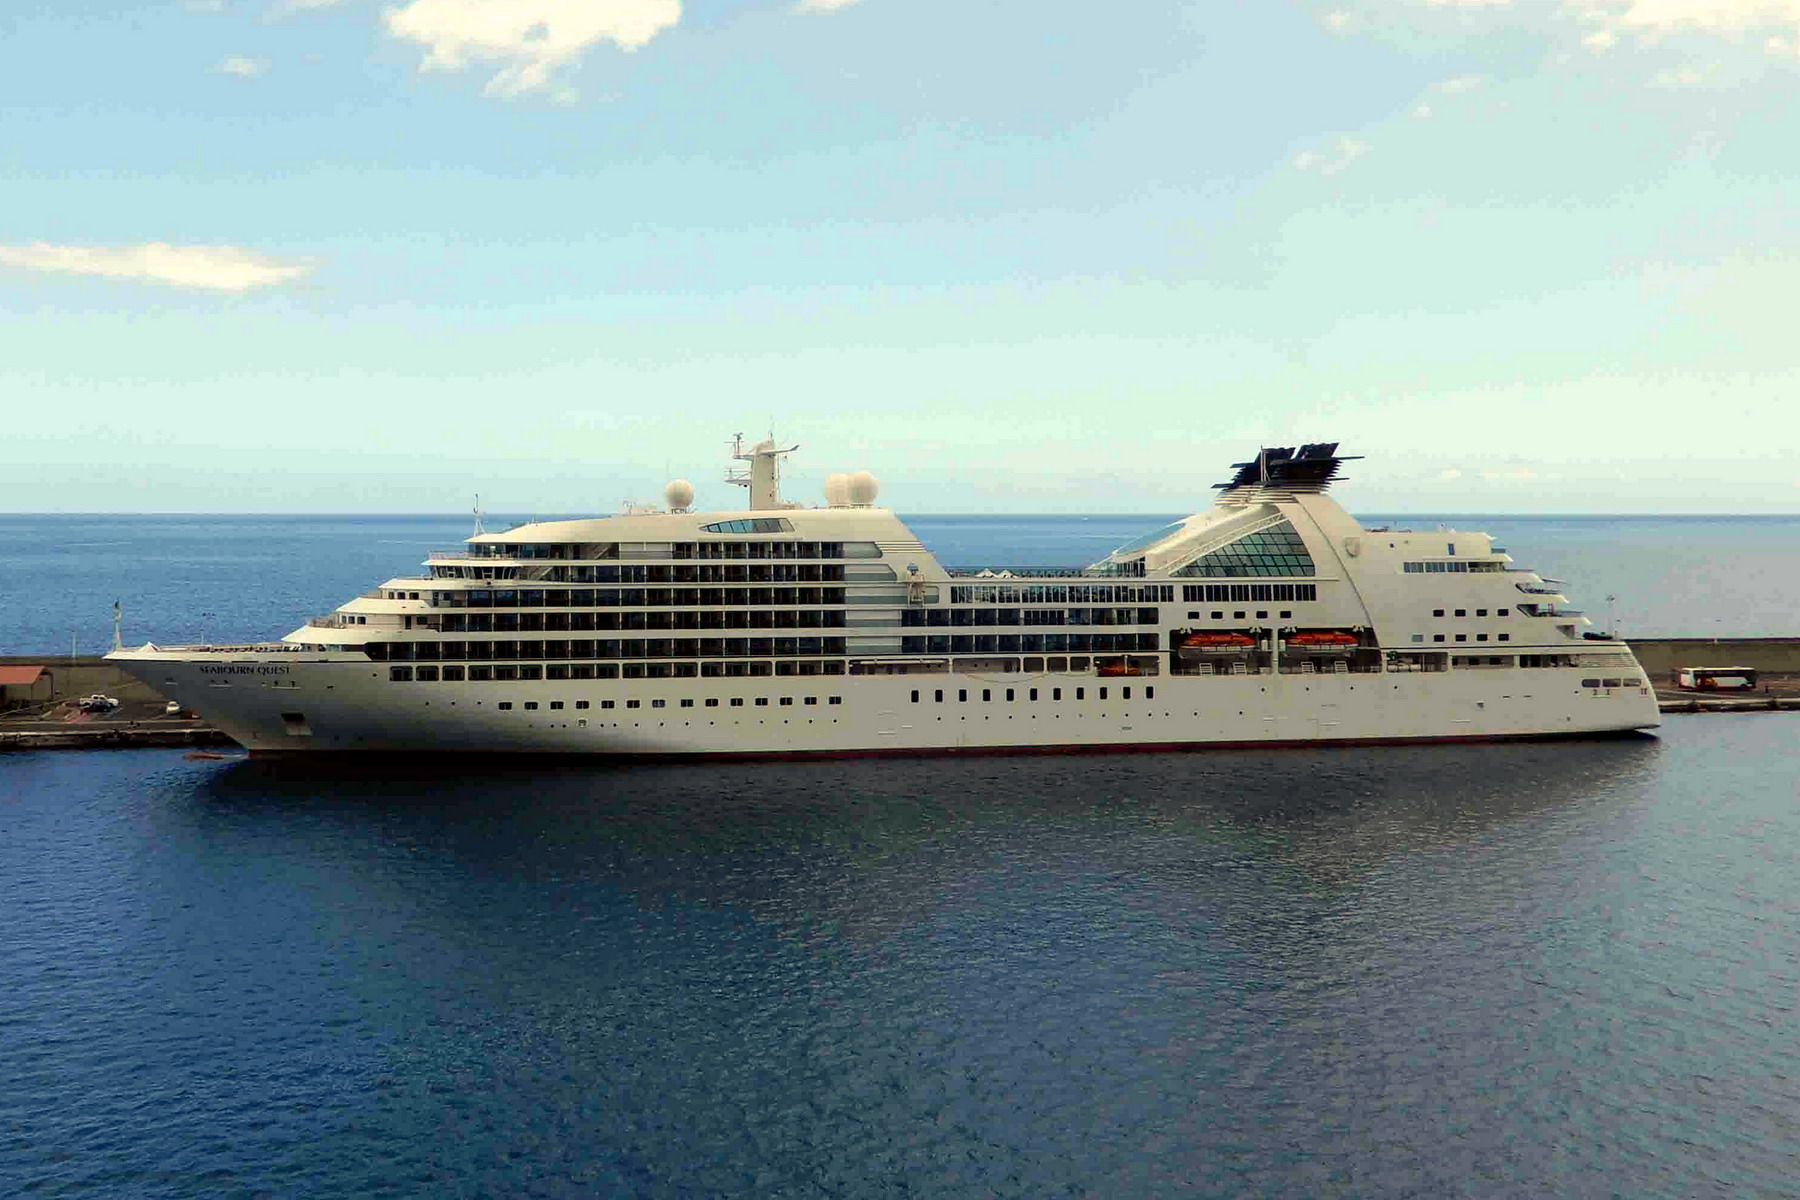 19SEABOURN_QUEST_9483126_©Dirk_Septer